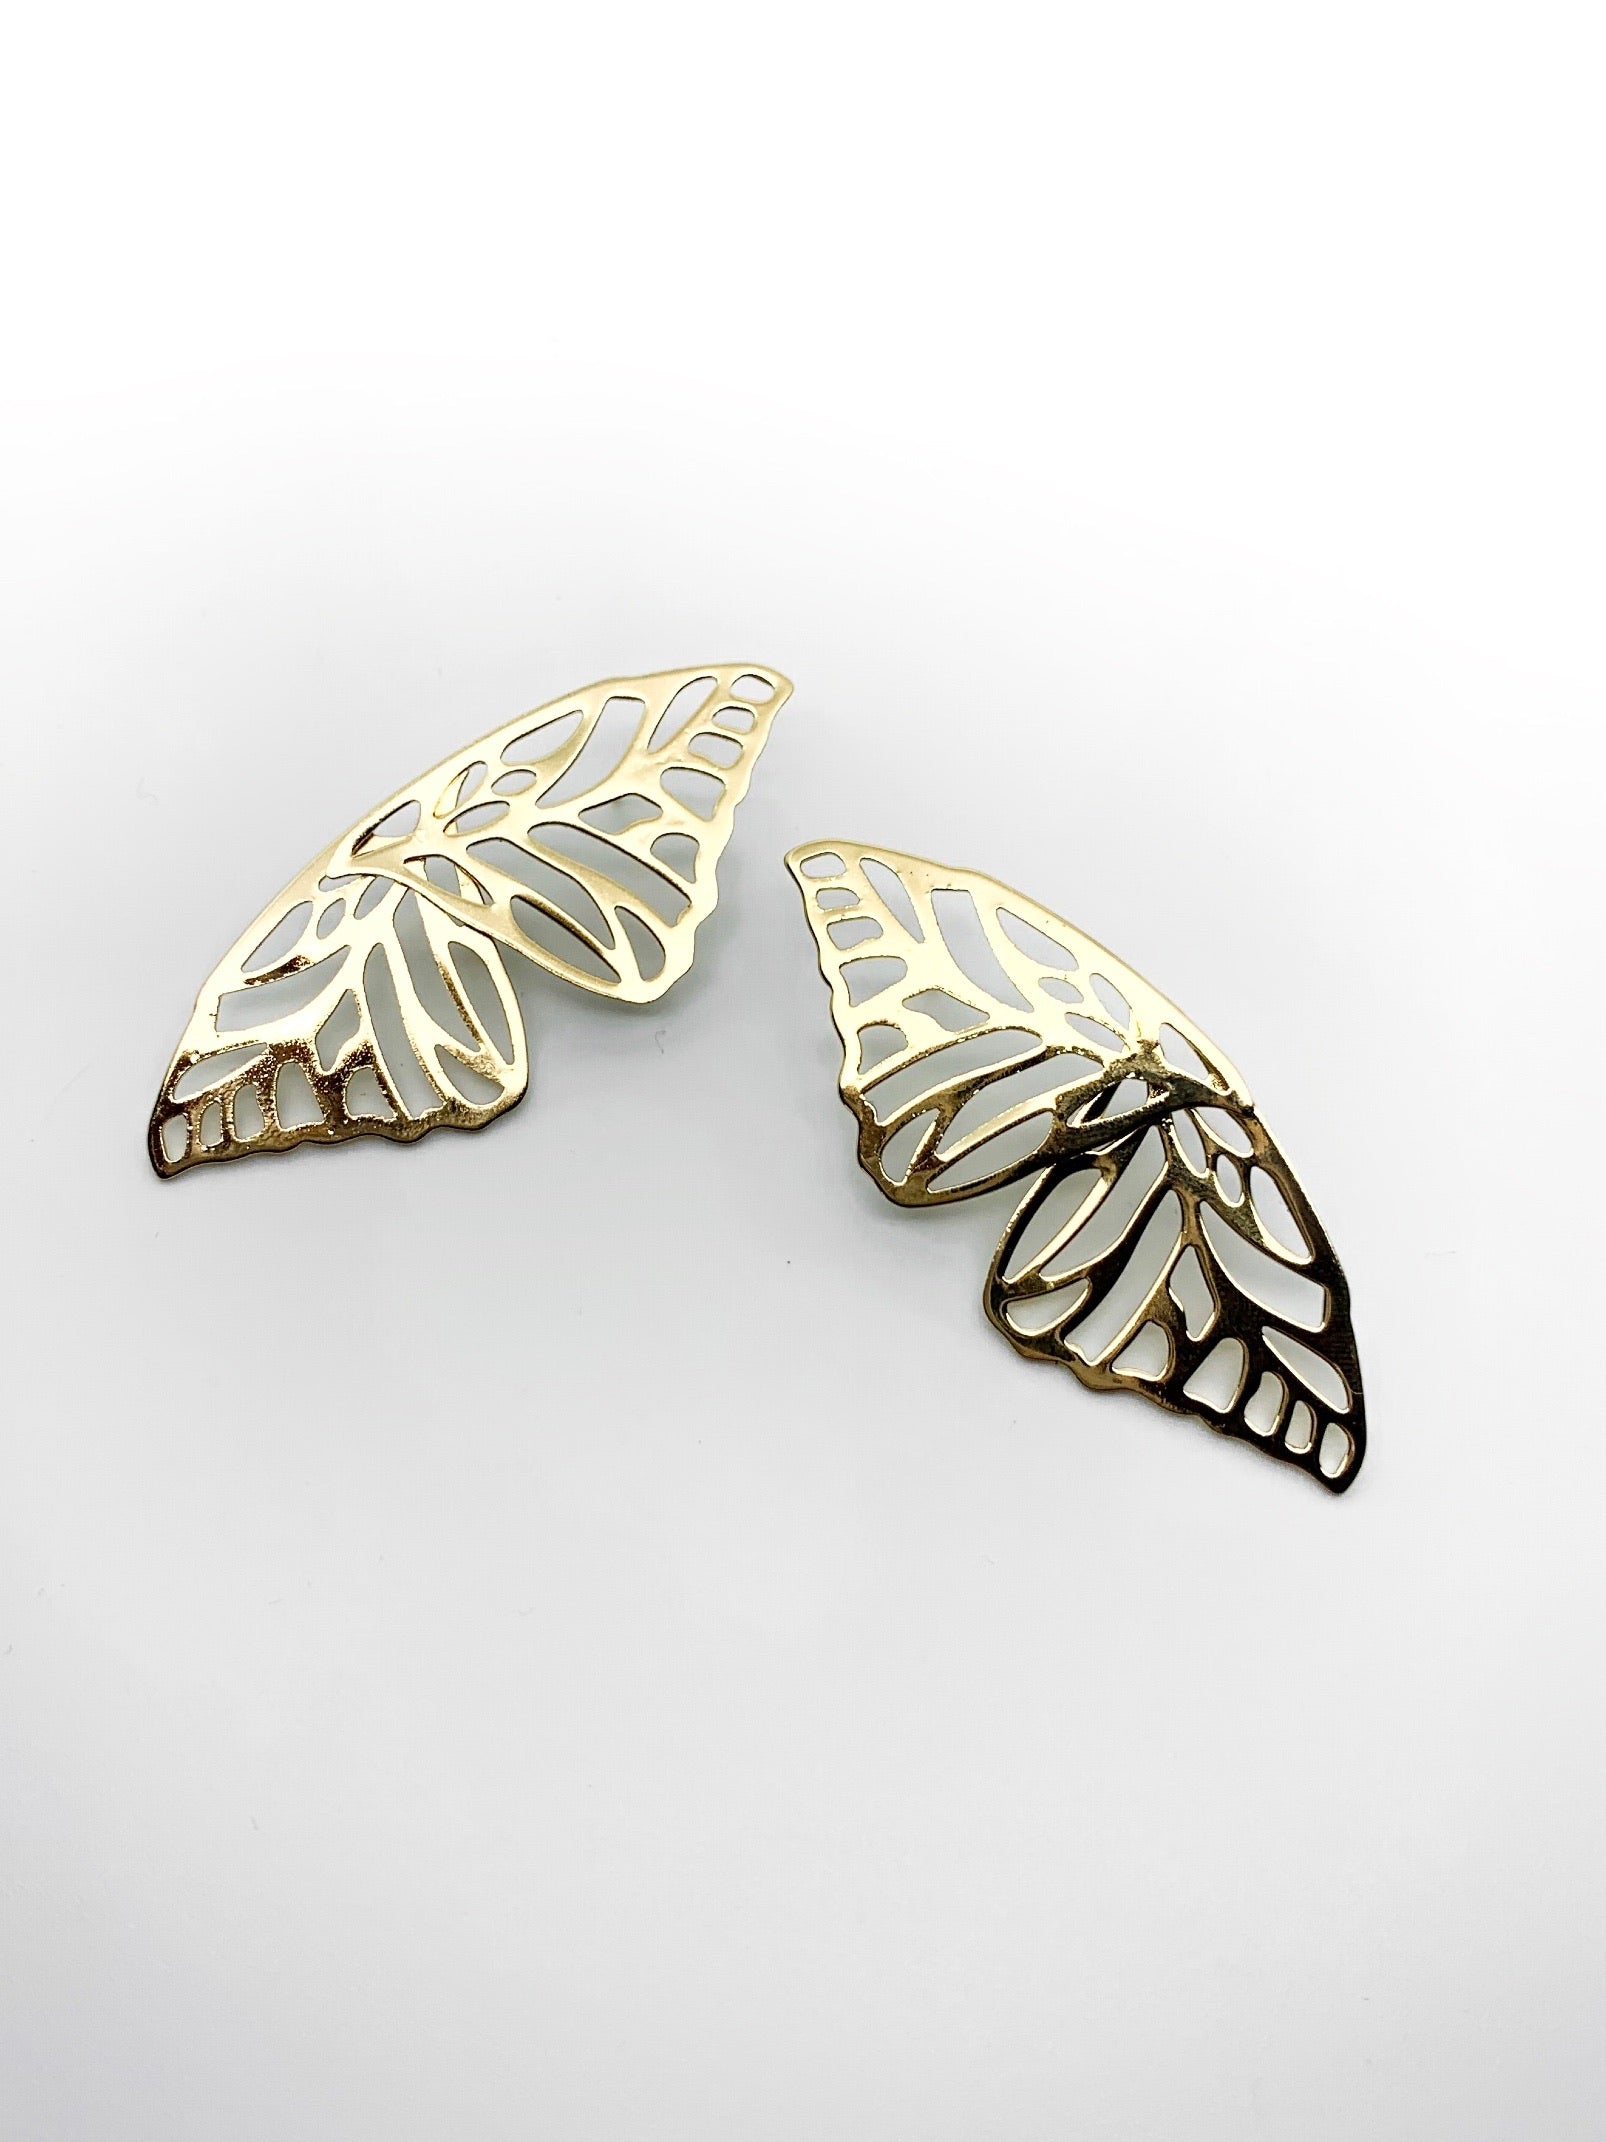 BUTTERFLY EARRINGS GOLD - Plush Boutique